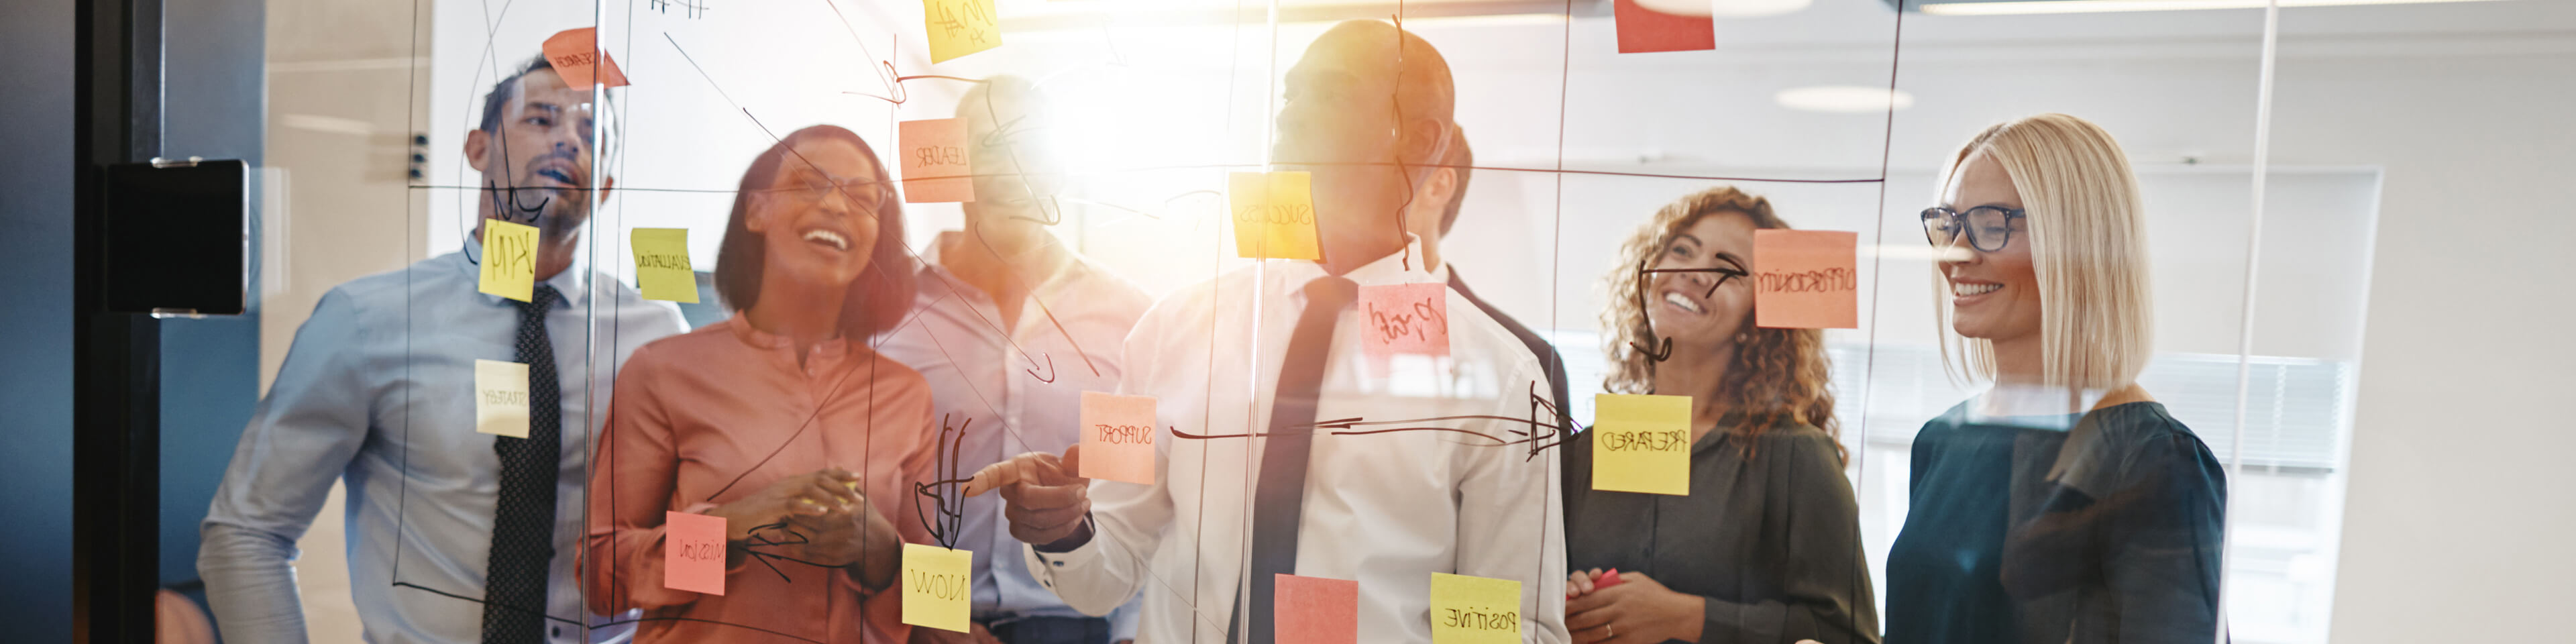 Group of men and women standing at a whiteboard, looking at a flowchart with sticky notes on it. the people are smiling.